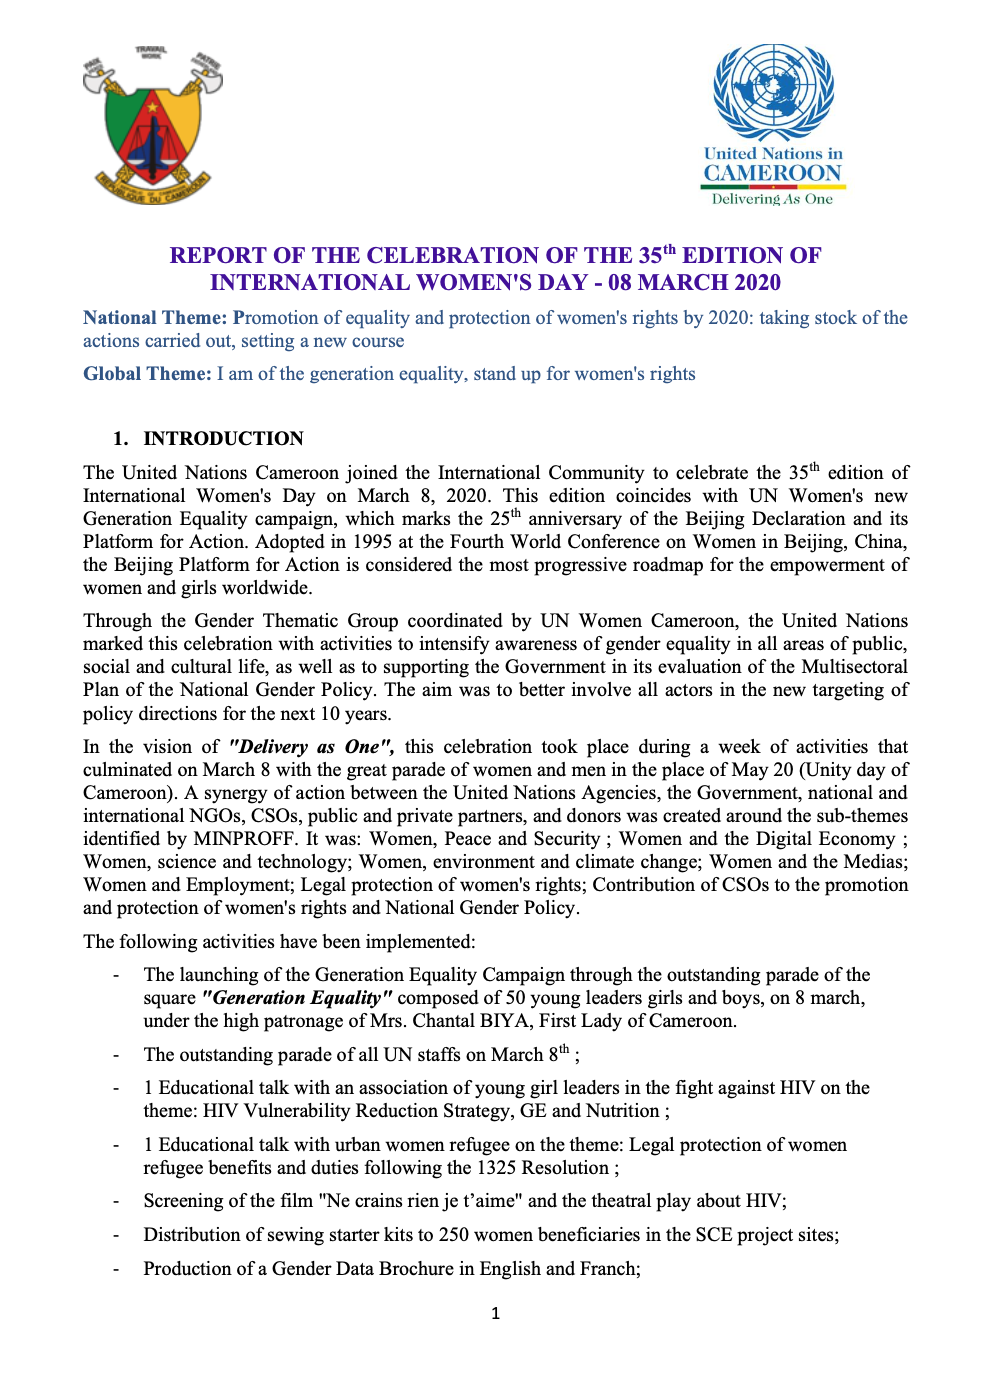 REPORT OF THE CELEBRATION OF THE 35th EDITION OF INTERNATIONAL WOMEN'S DAY - 08 MARCH 2020